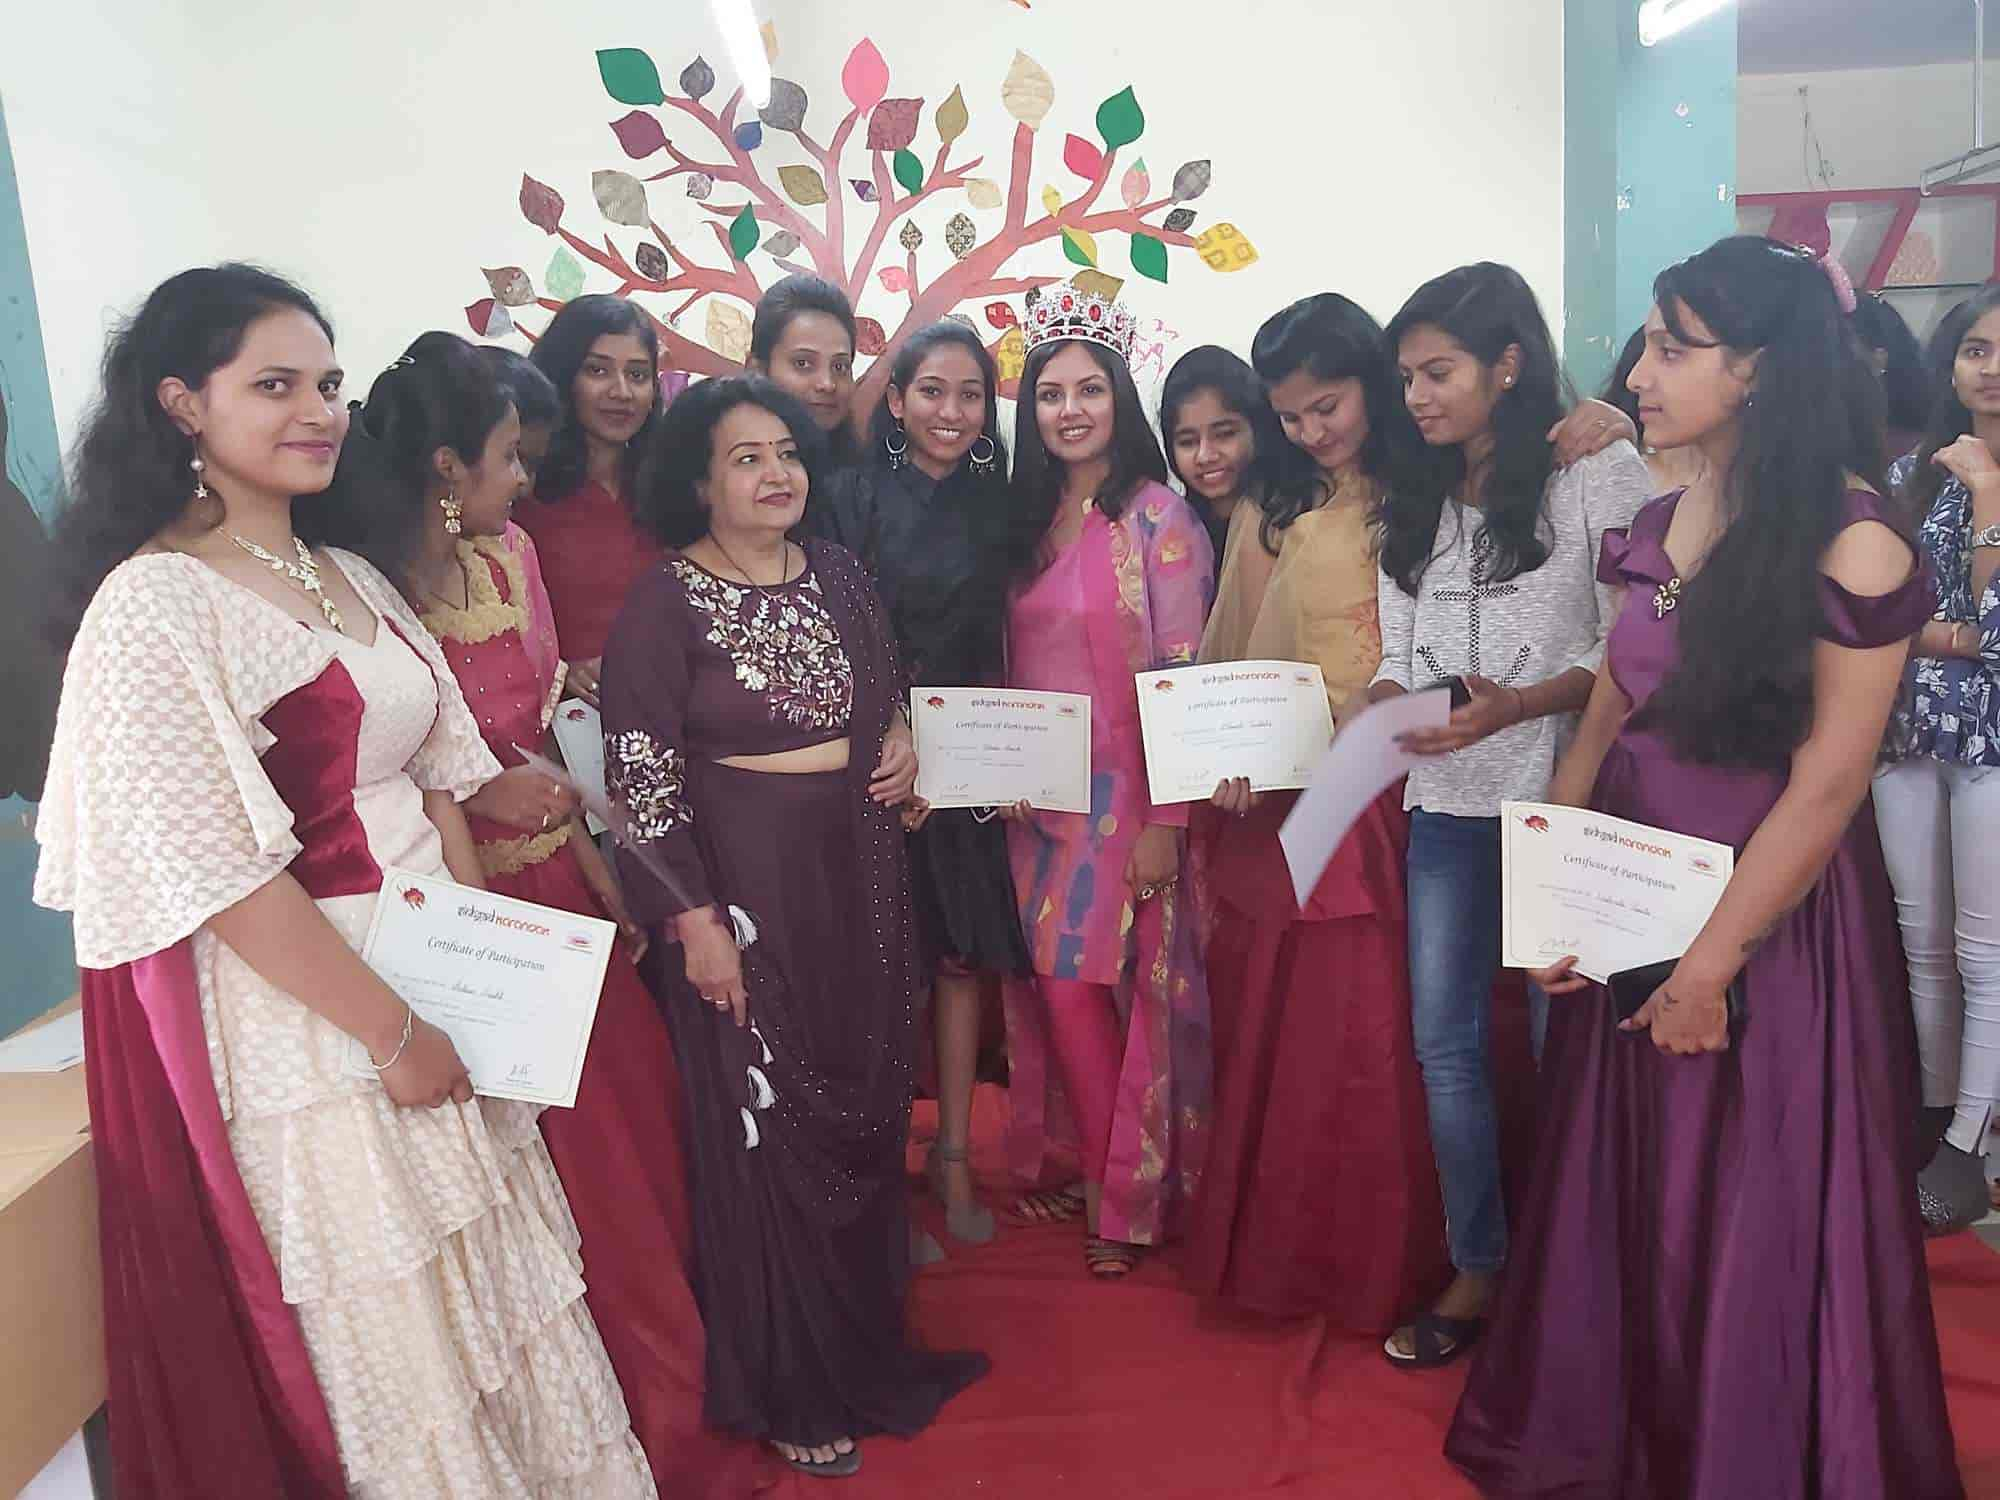 Sst Fashion Design College Rajiv Gandhi Chowk Fashion Designing Institutes In Latur Justdial